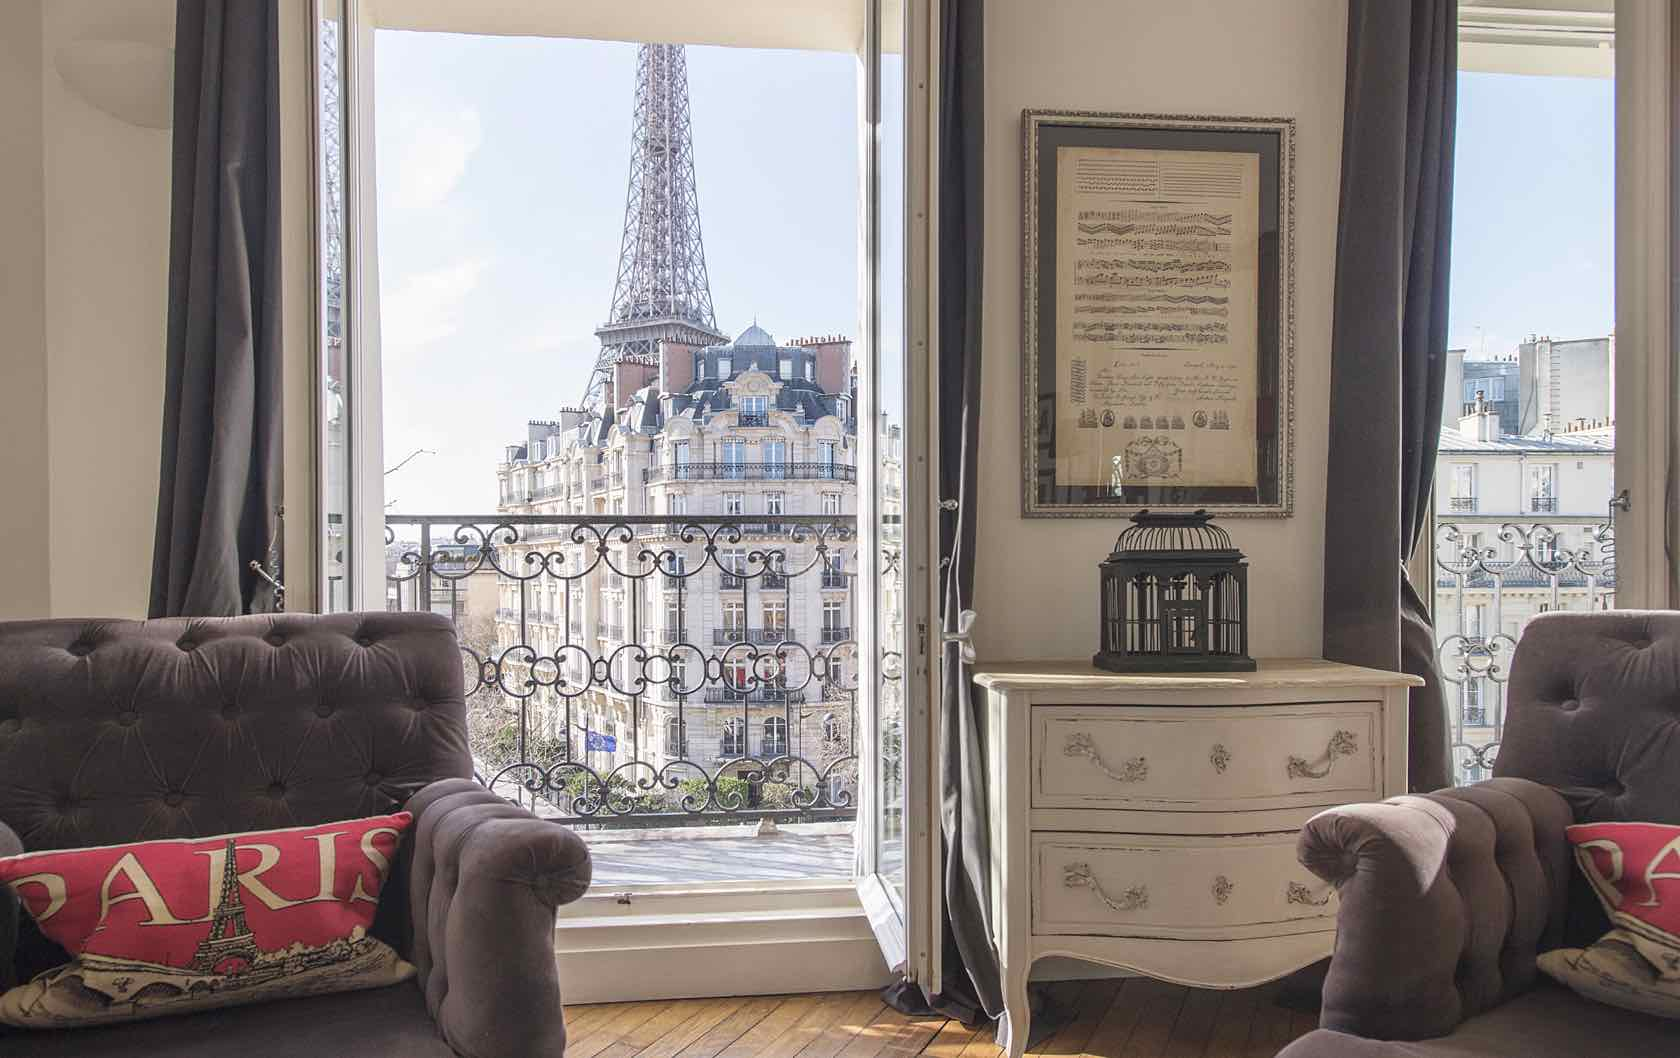 Paris Apartment Remodeling: Check out the Champagne!